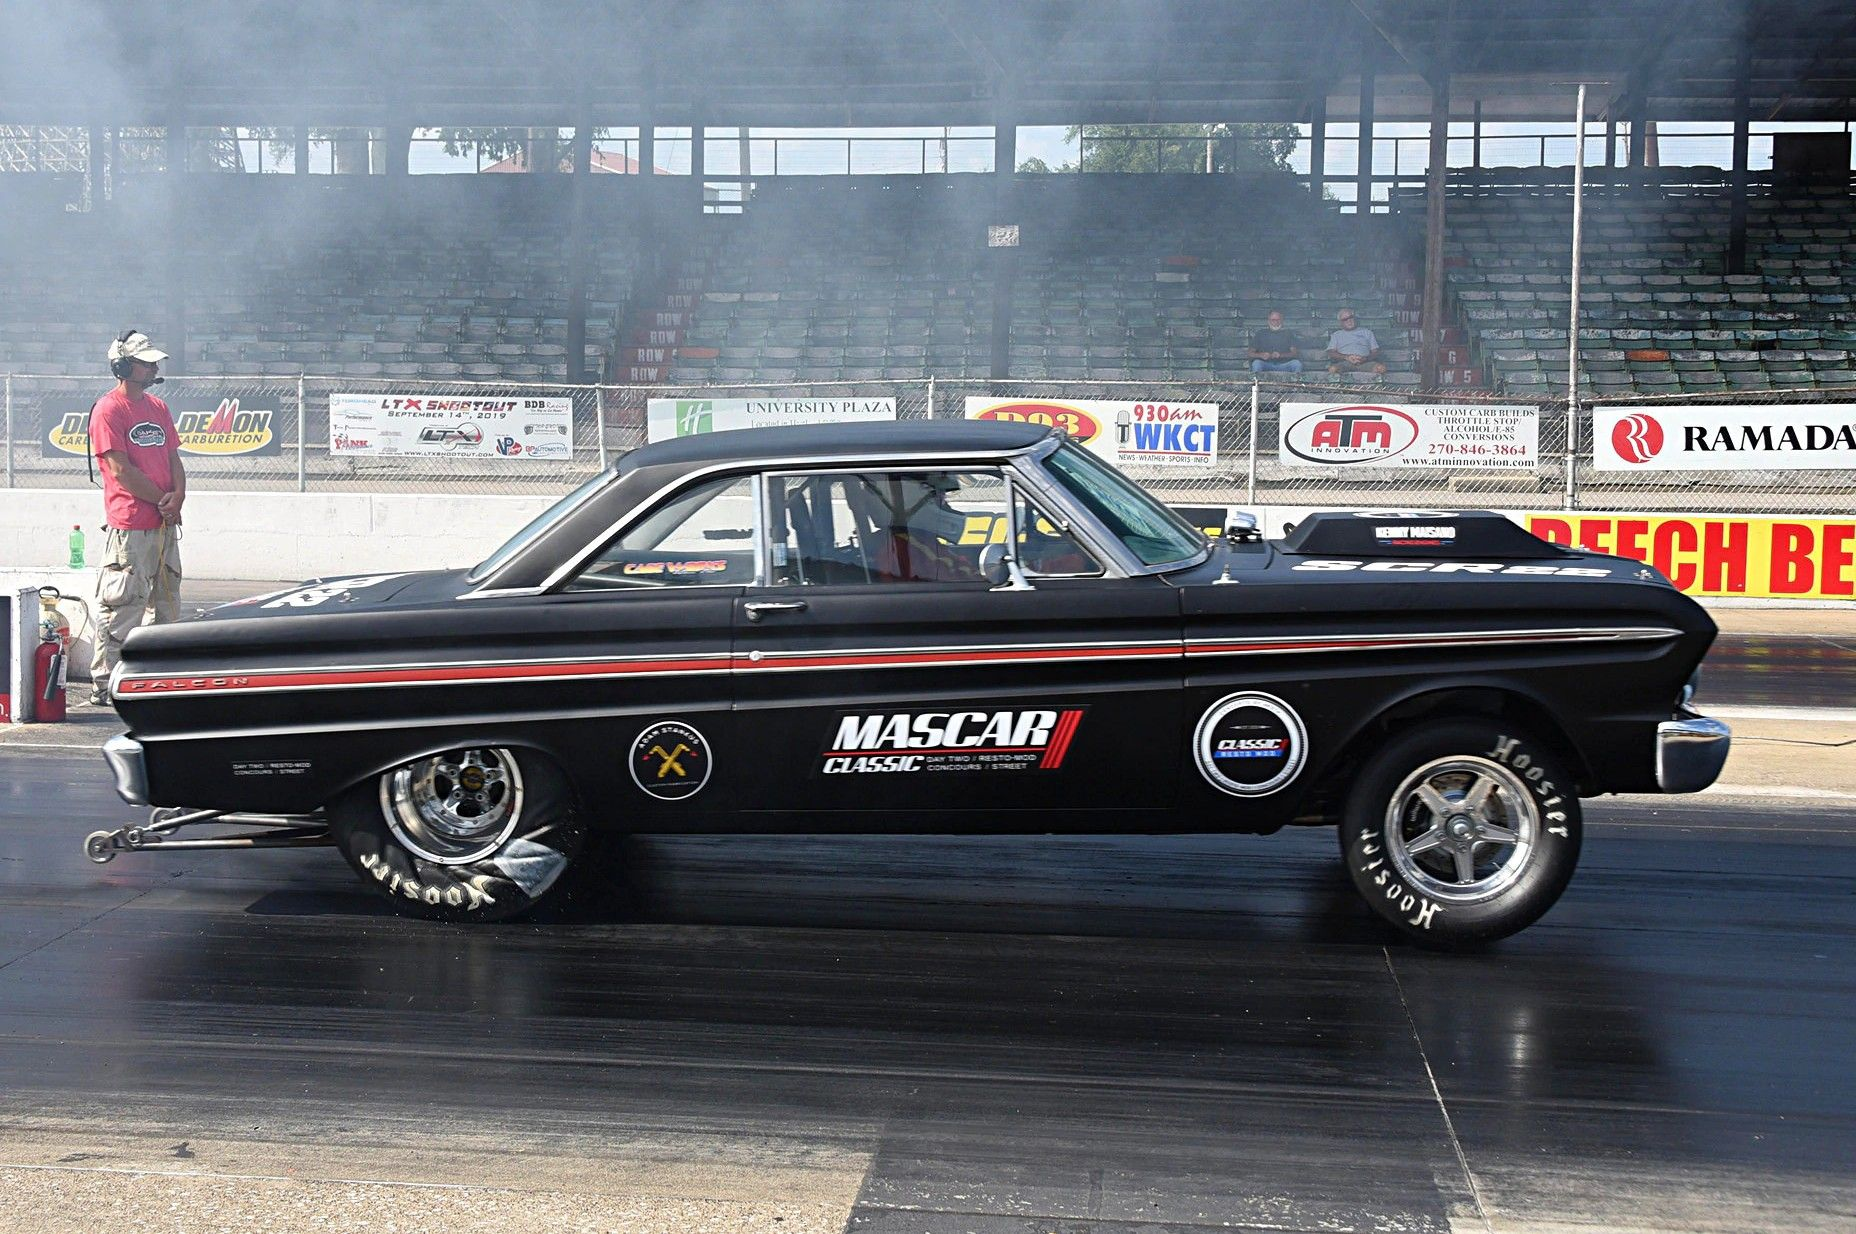 1965 Ford Falcon Ford Racing Drag Racing Cars Ford Falcon